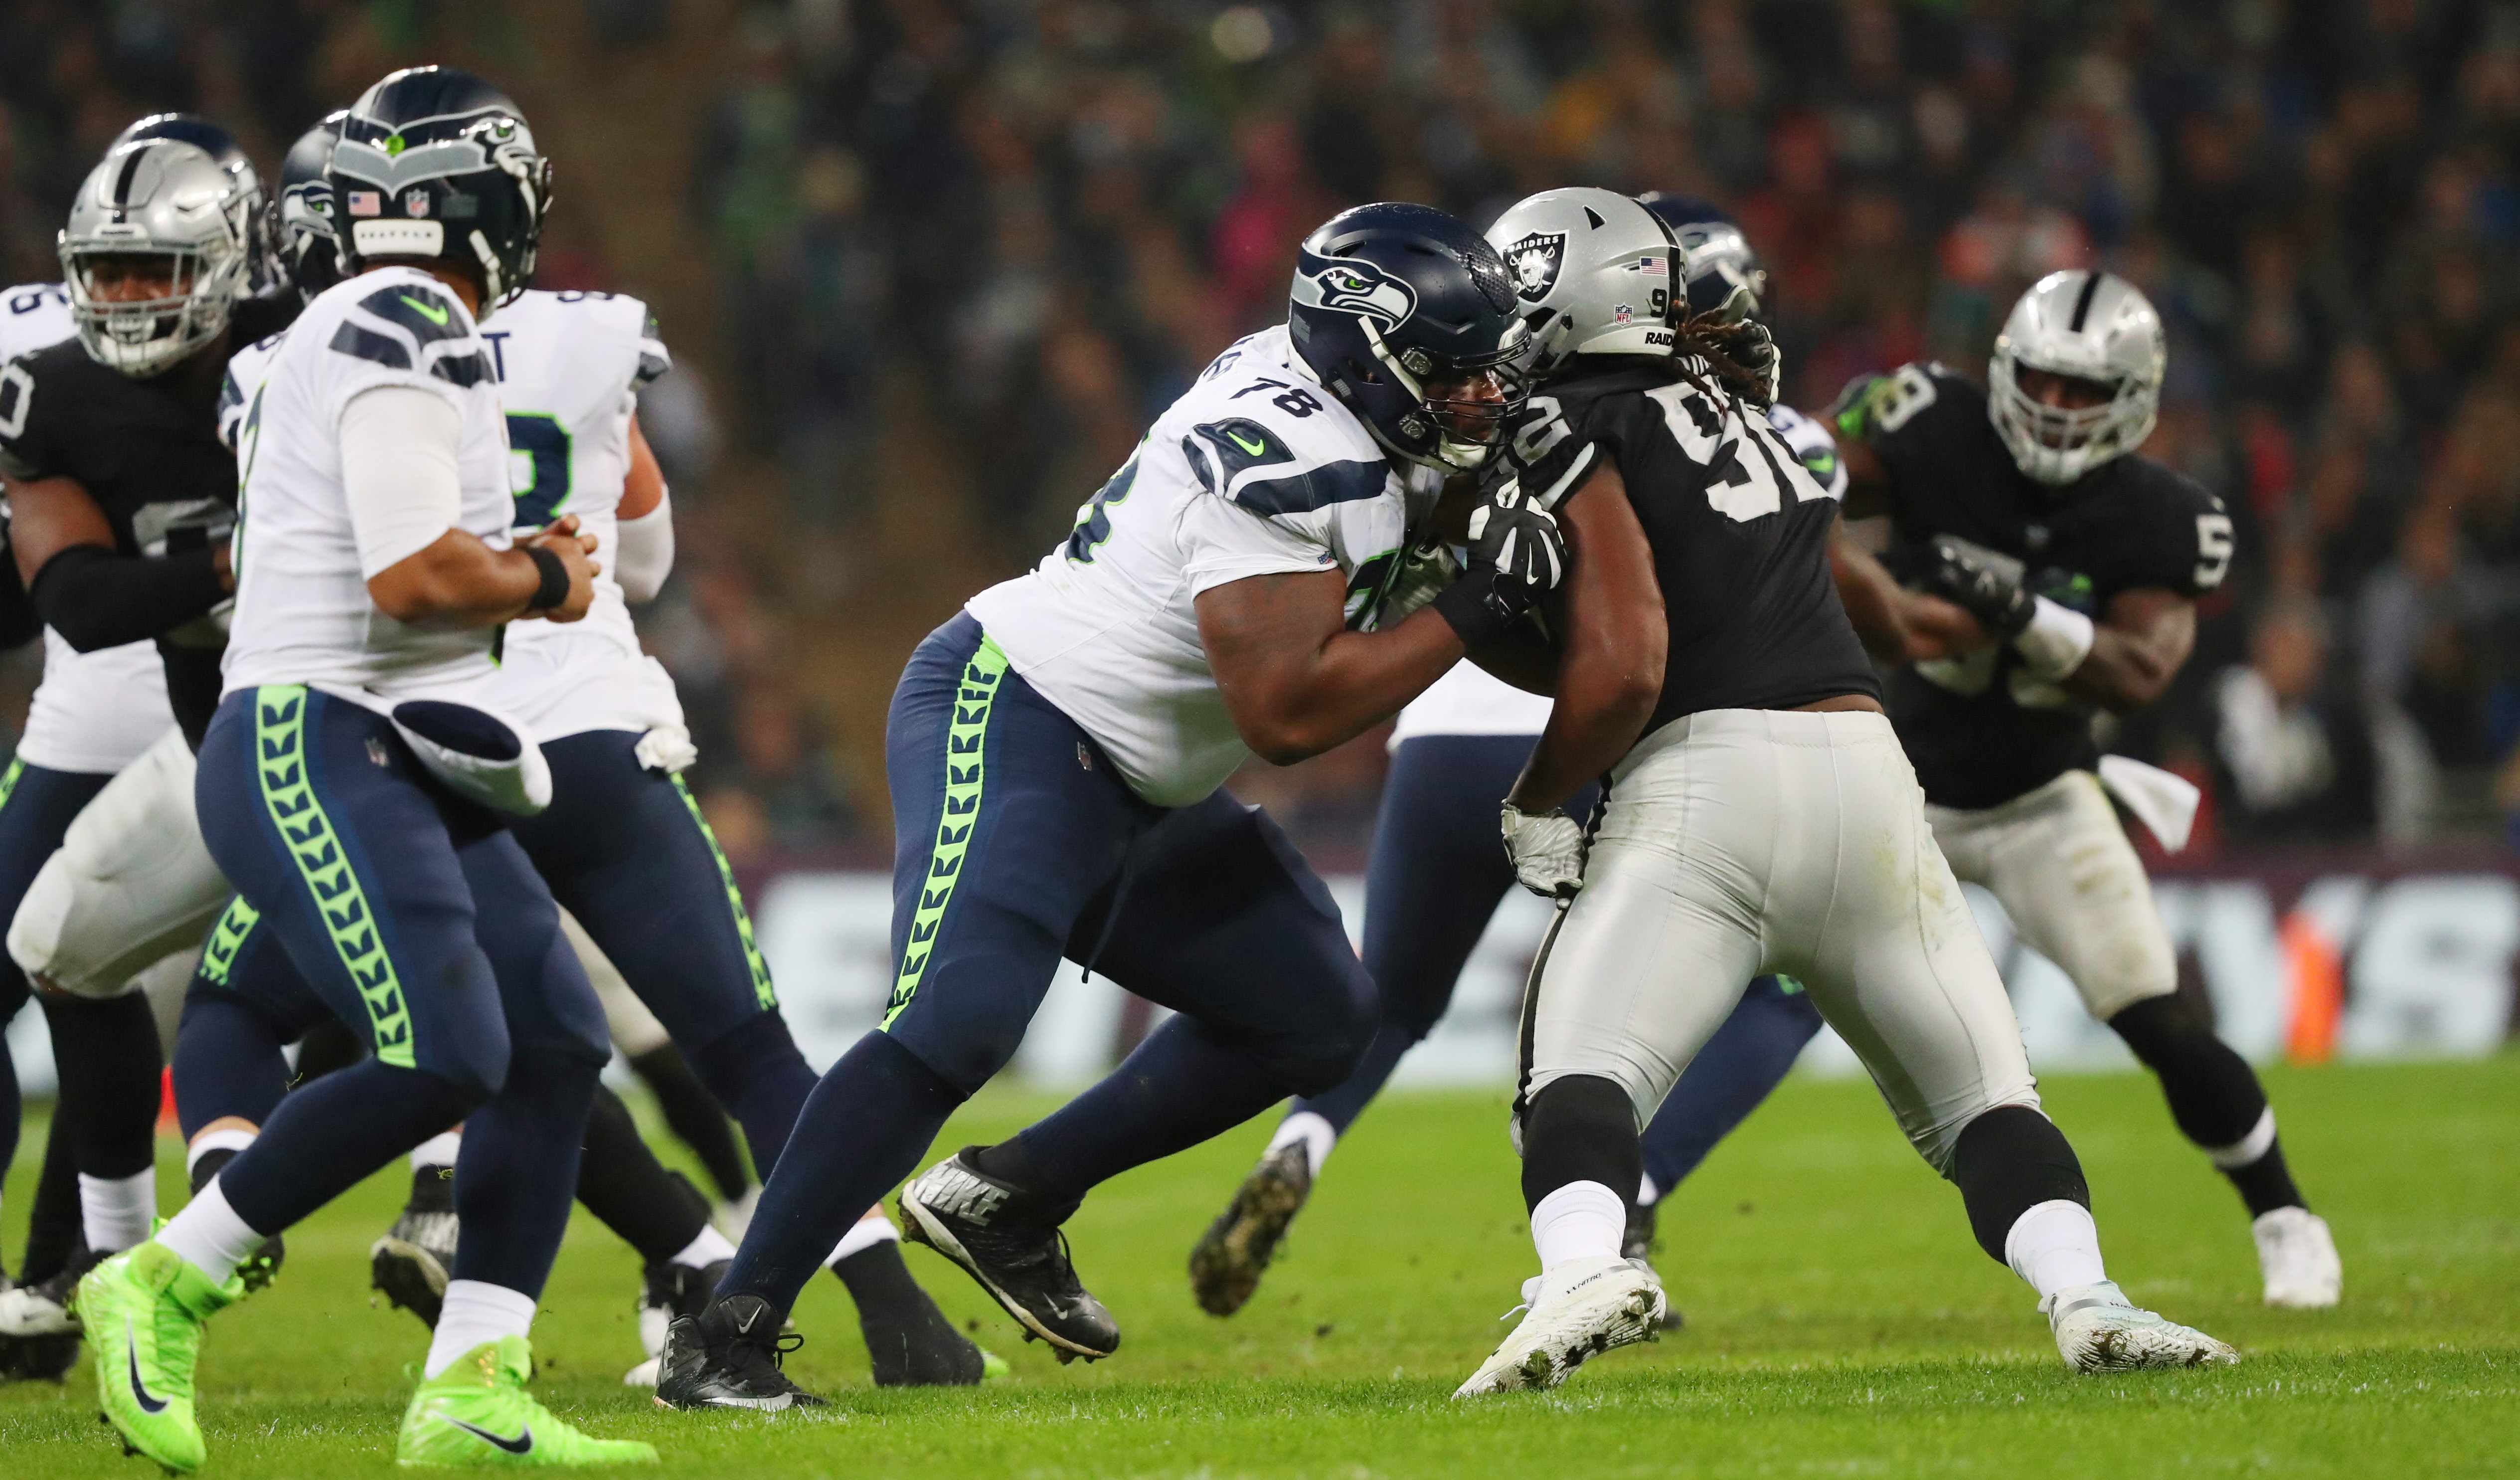 LONDON, ENGLAND - OCTOBER 14: Offensive guard D.J. Fluker #78 of the Seattle Seahawks blocks nose tackle P.J. Hall #92 of the Oakland Raiders at Wembley Stadium on October 14, 2018 in London, United Kingdom.  (Photo by Mitchell Gunn/Getty Images)  TL